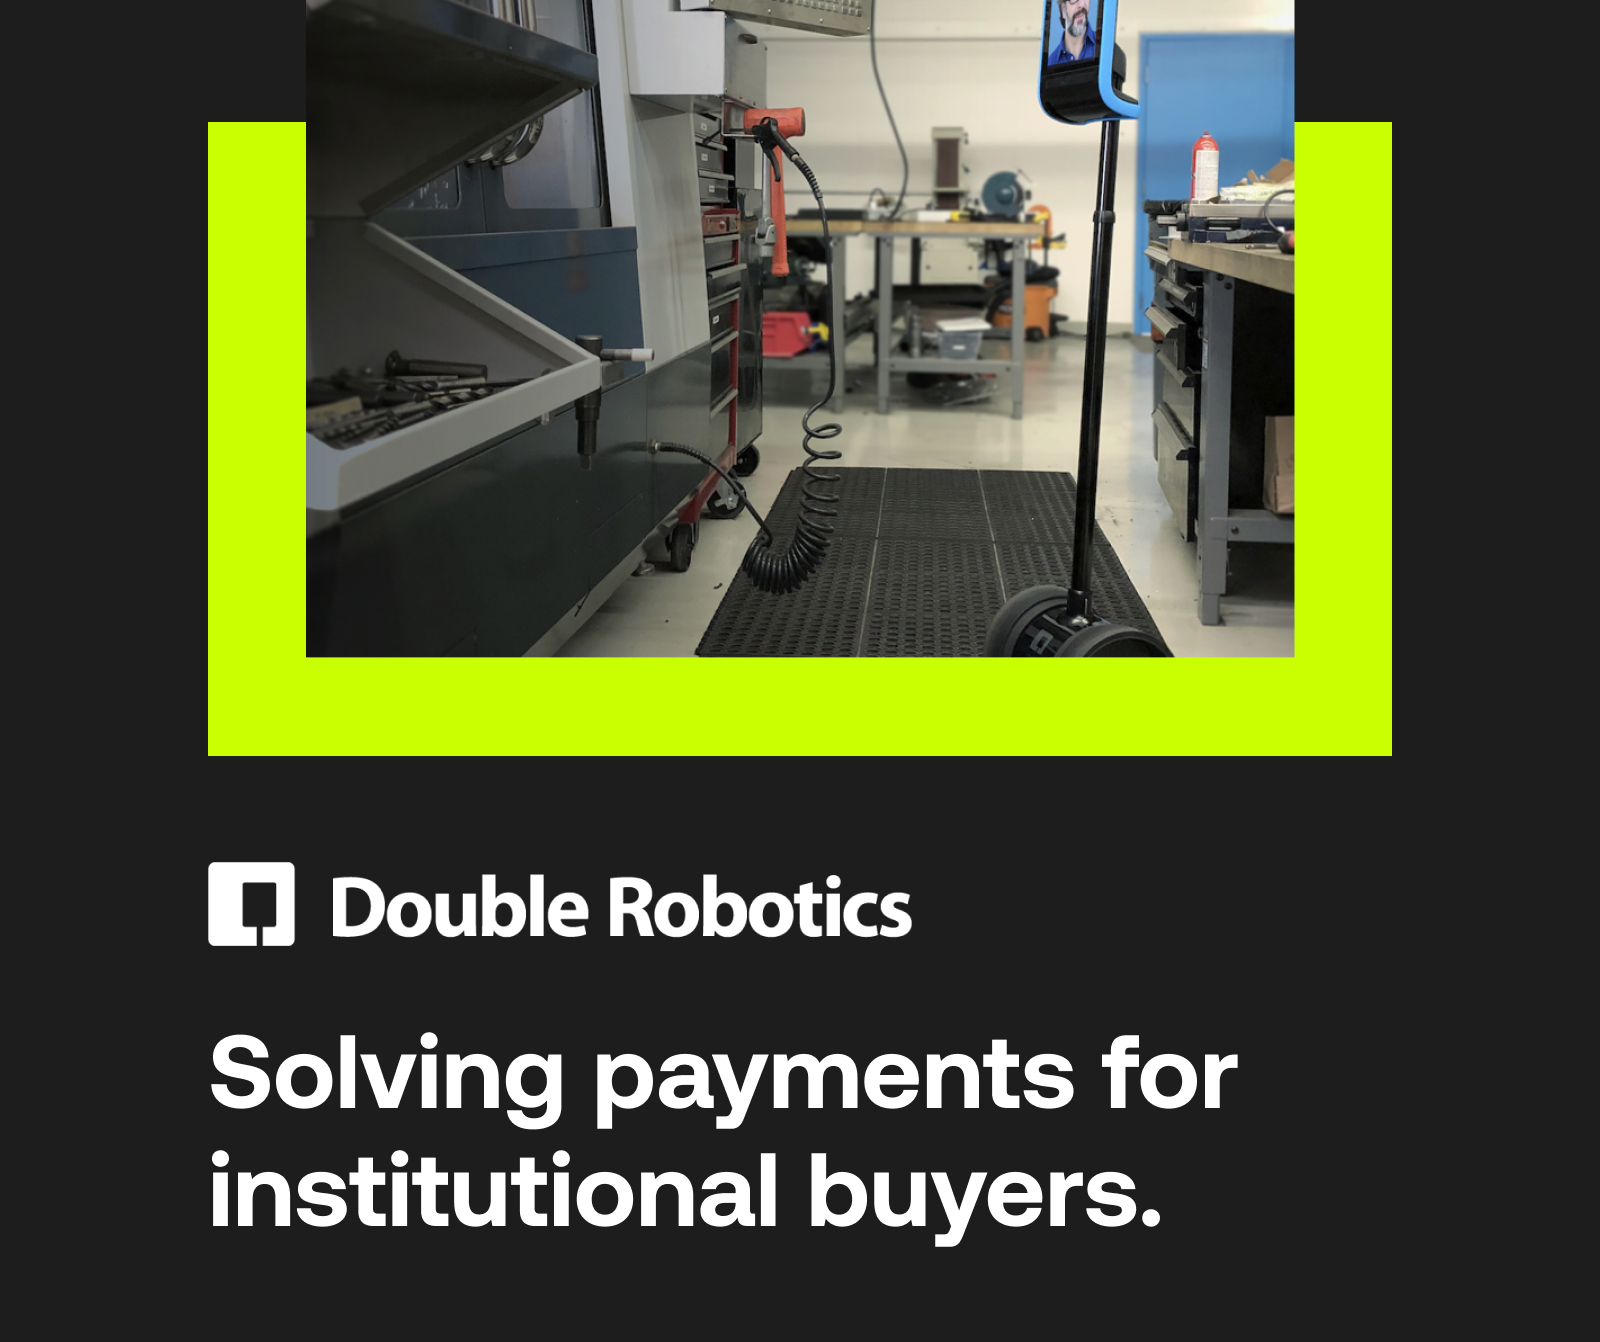 Double Robotics Makes Payments Easy for Institutional Customers